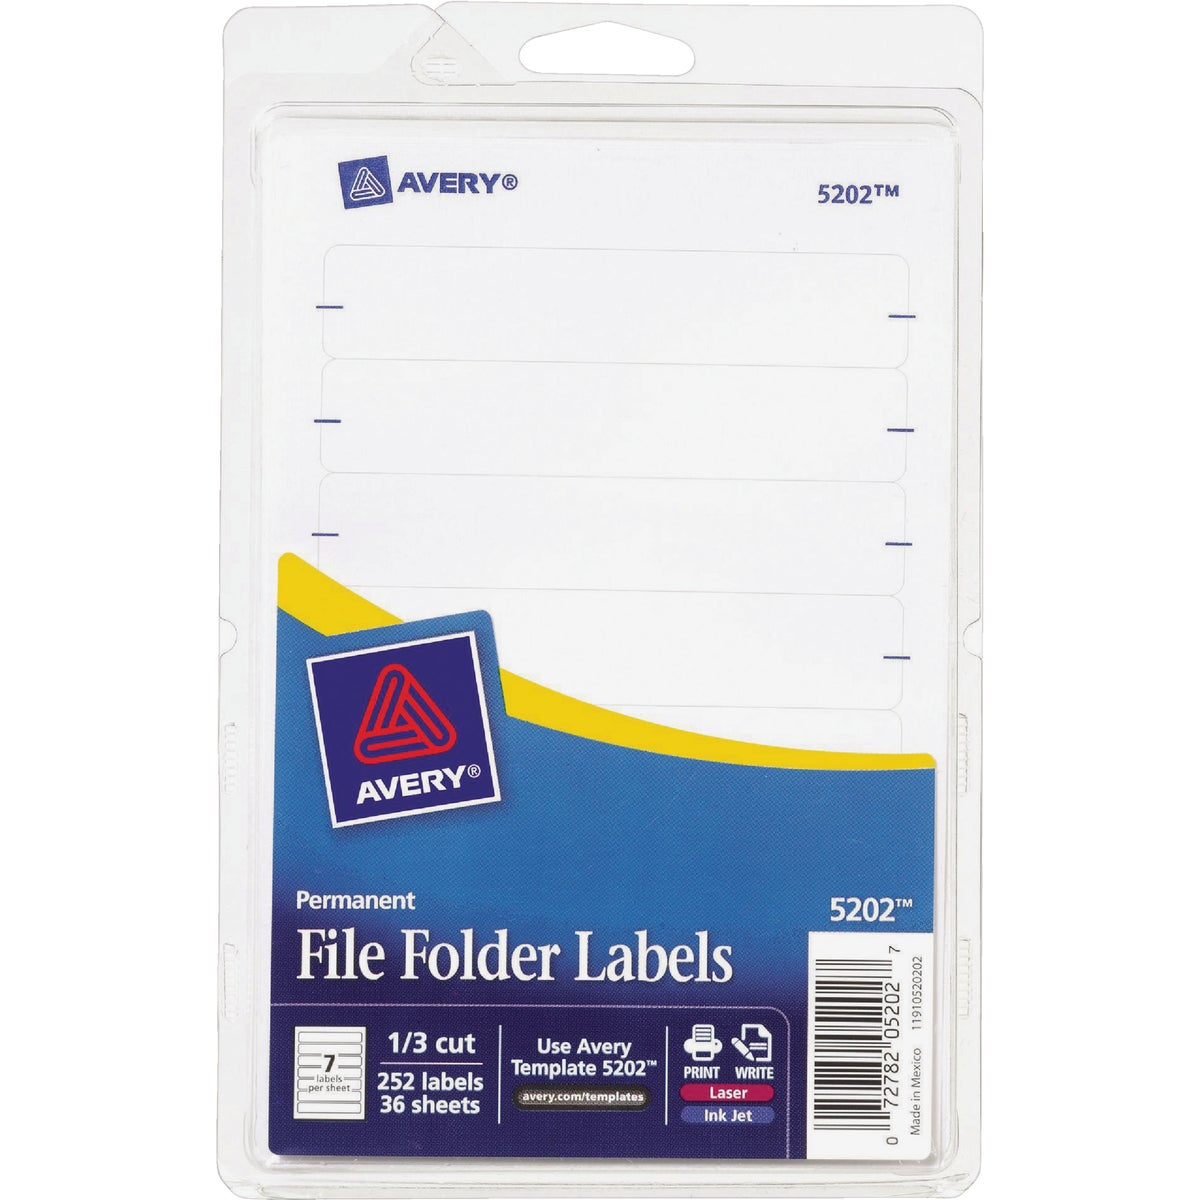 252PK WHT FILING LABEL - 05202 by Avery Dennison